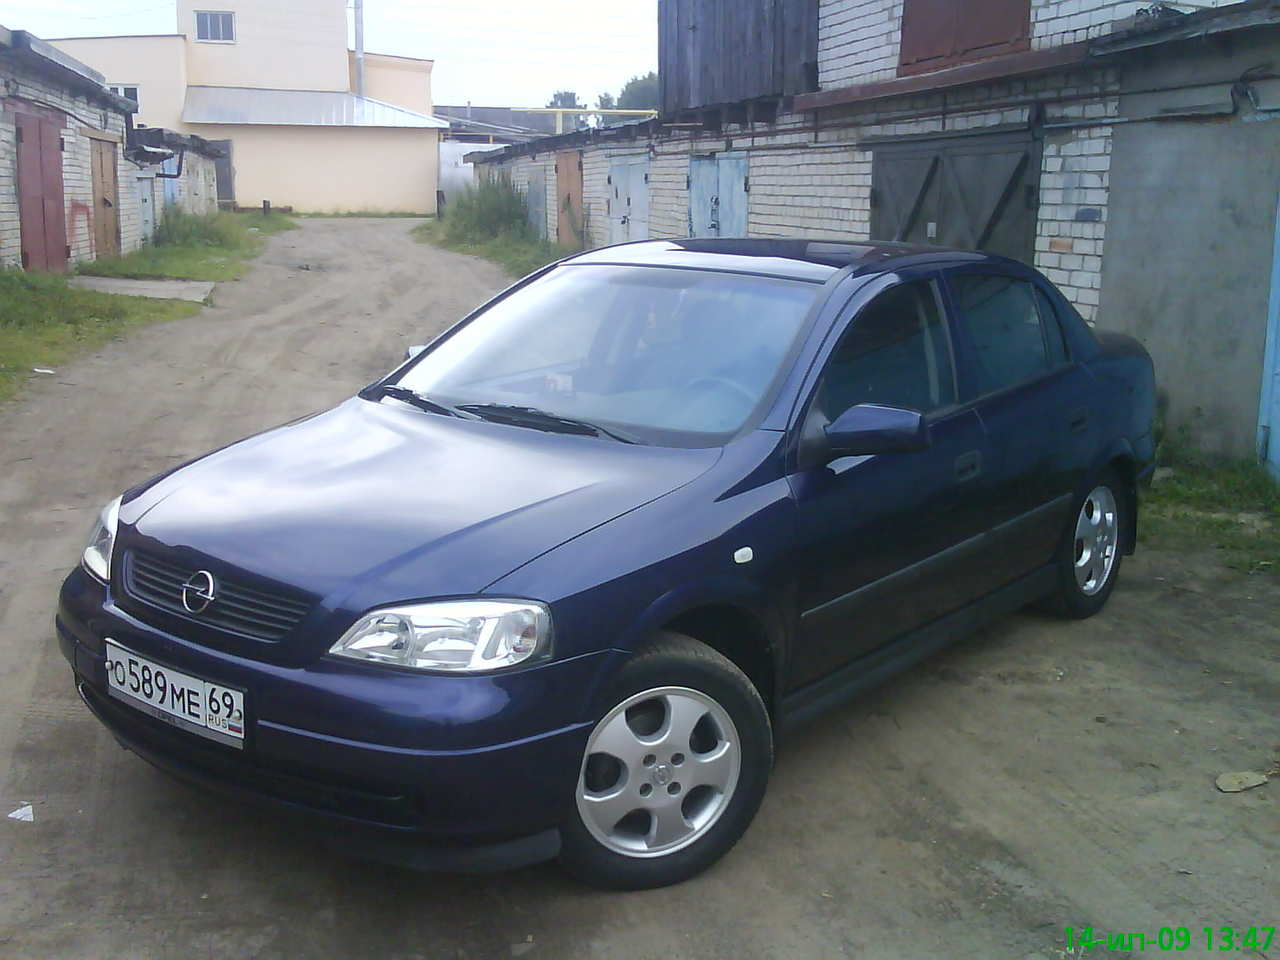 2001 opel astra pictures gasoline ff manual for sale. Black Bedroom Furniture Sets. Home Design Ideas